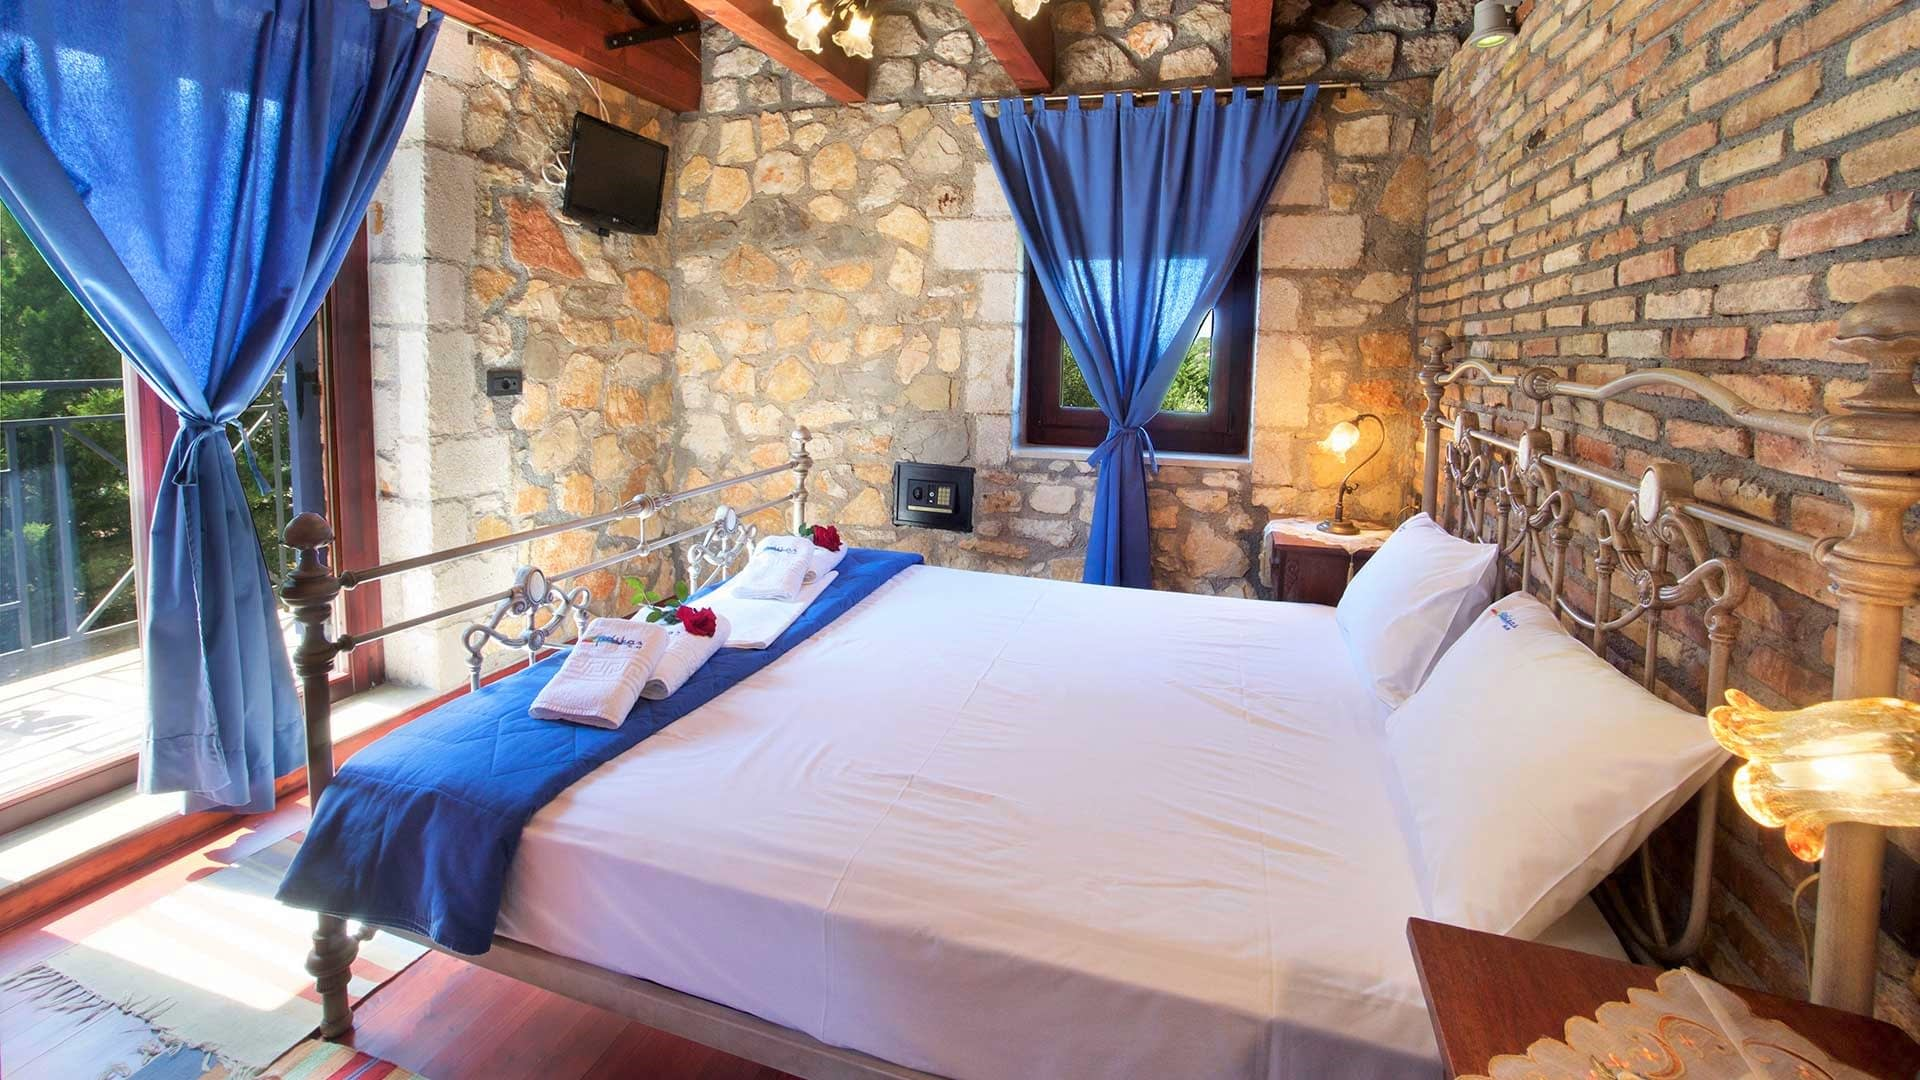 Bedroom of stone villa for rent in Ithaca Greece, Pilikata